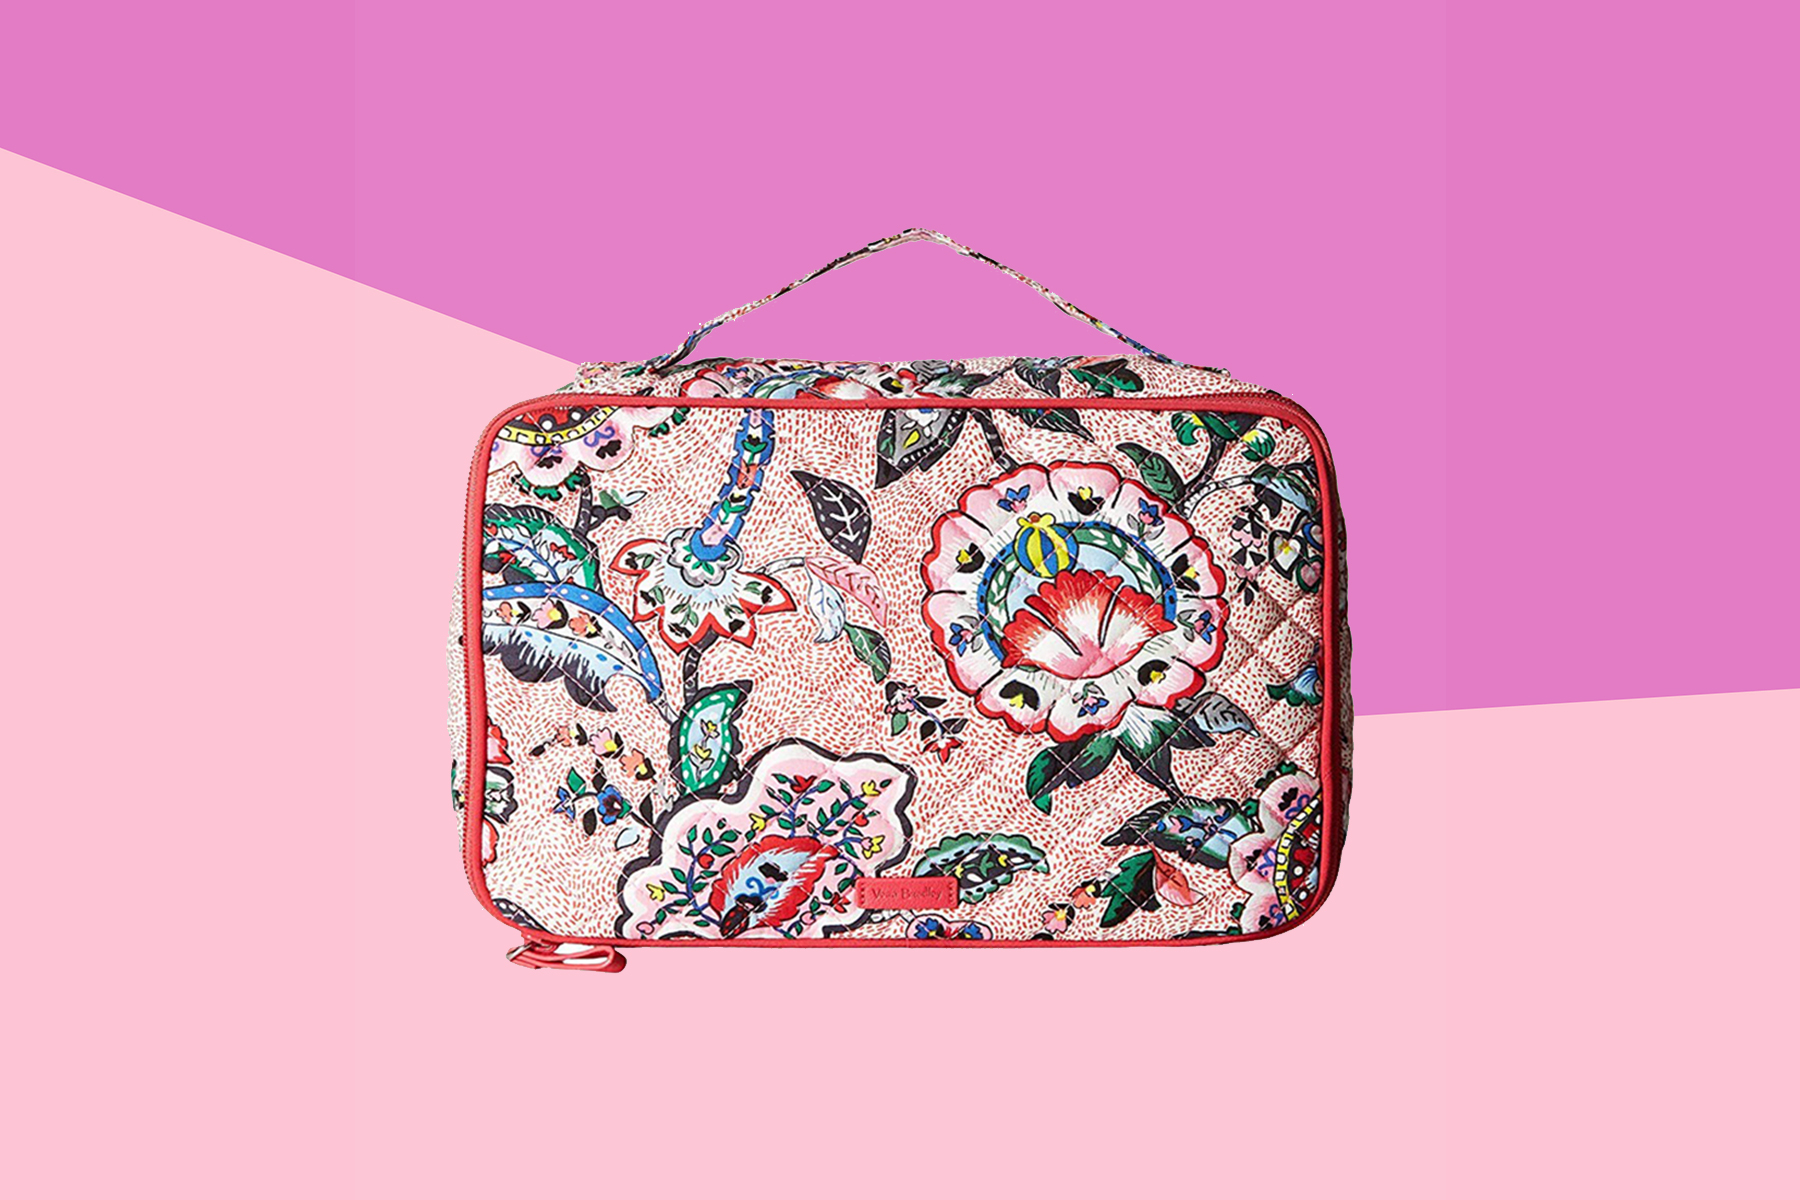 The 15 Best Makeup Bags to Keep All Your Products Organized, According to Beauty Lovers